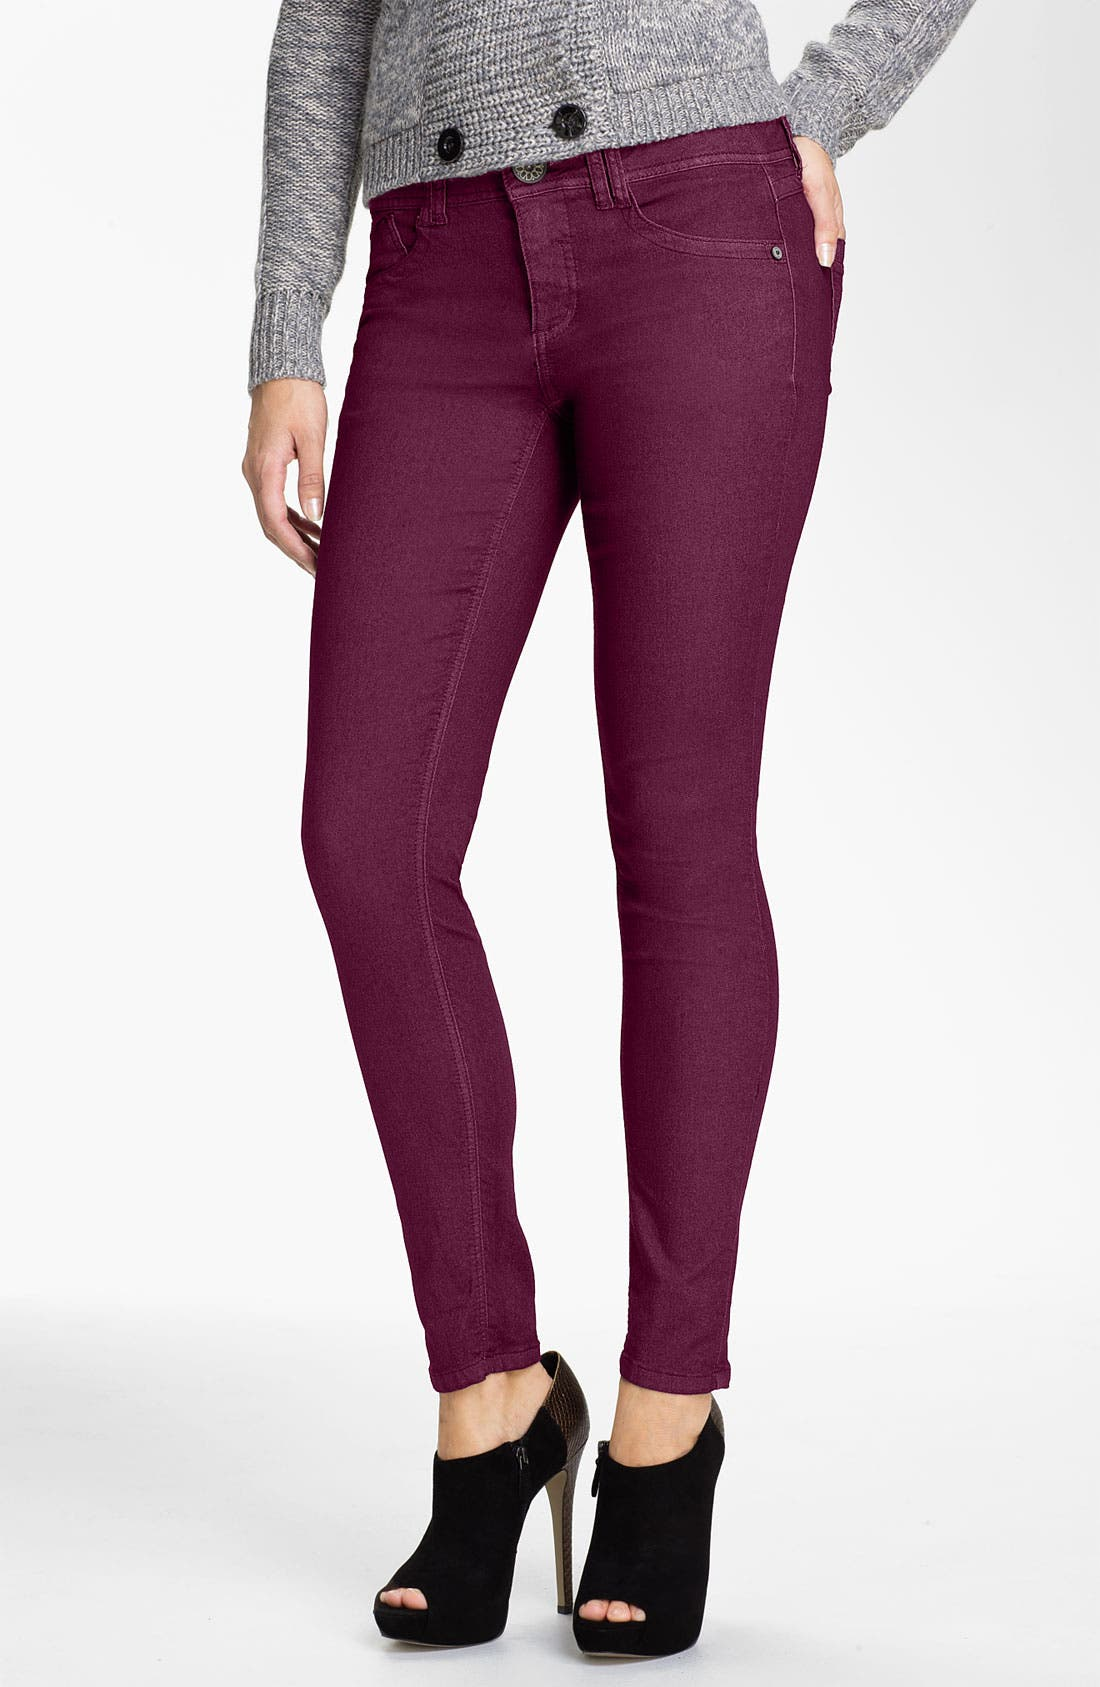 Alternate Image 1 Selected - Wit & Wisdom Colored Denim Skinny Jeans (Nordstrom Exclusive)